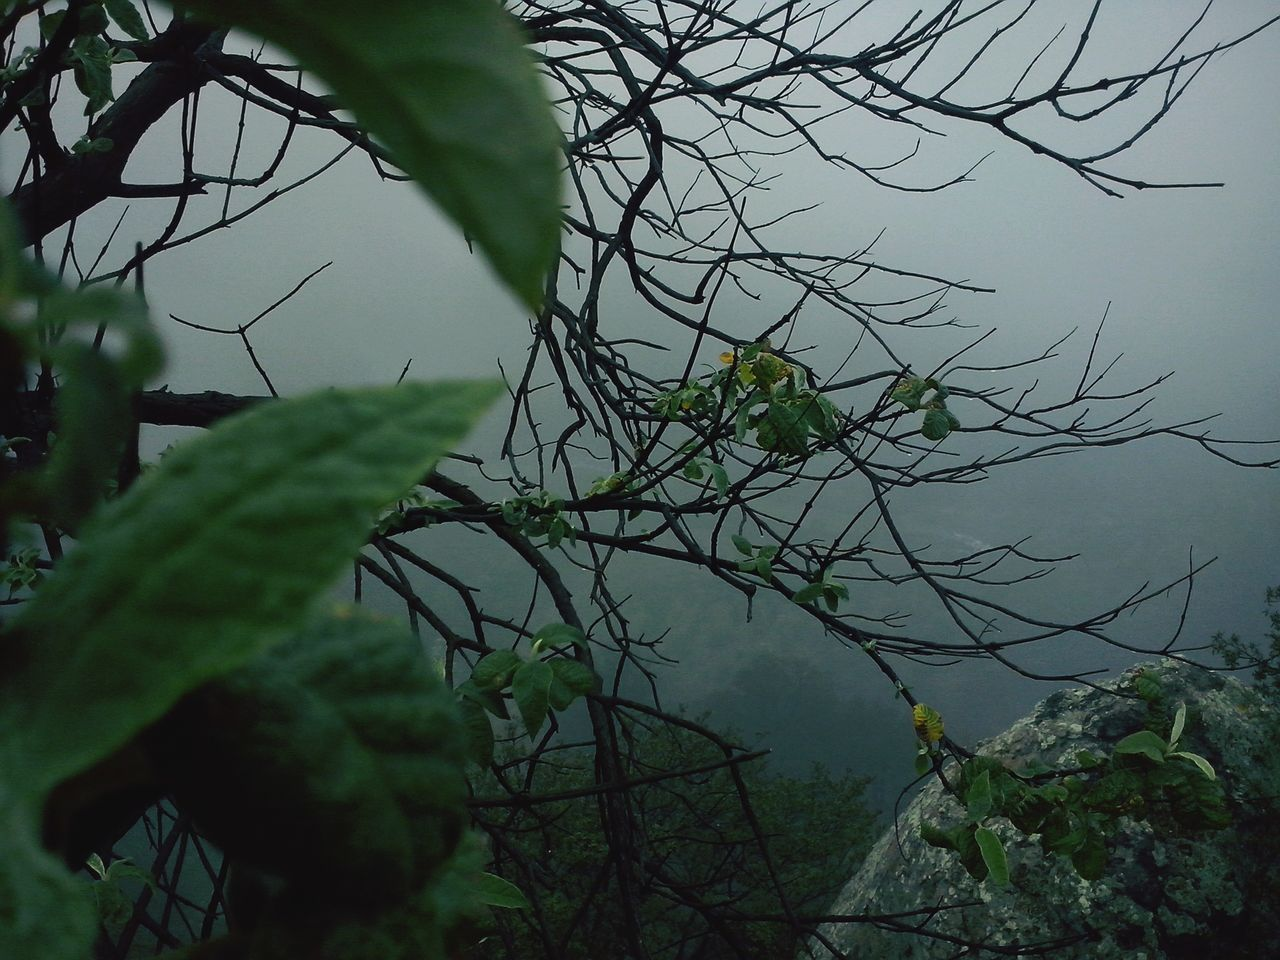 branch, growth, leaf, tree, nature, focus on foreground, close-up, plant, tranquility, sky, beauty in nature, twig, outdoors, no people, green color, day, low angle view, silhouette, scenics, forest